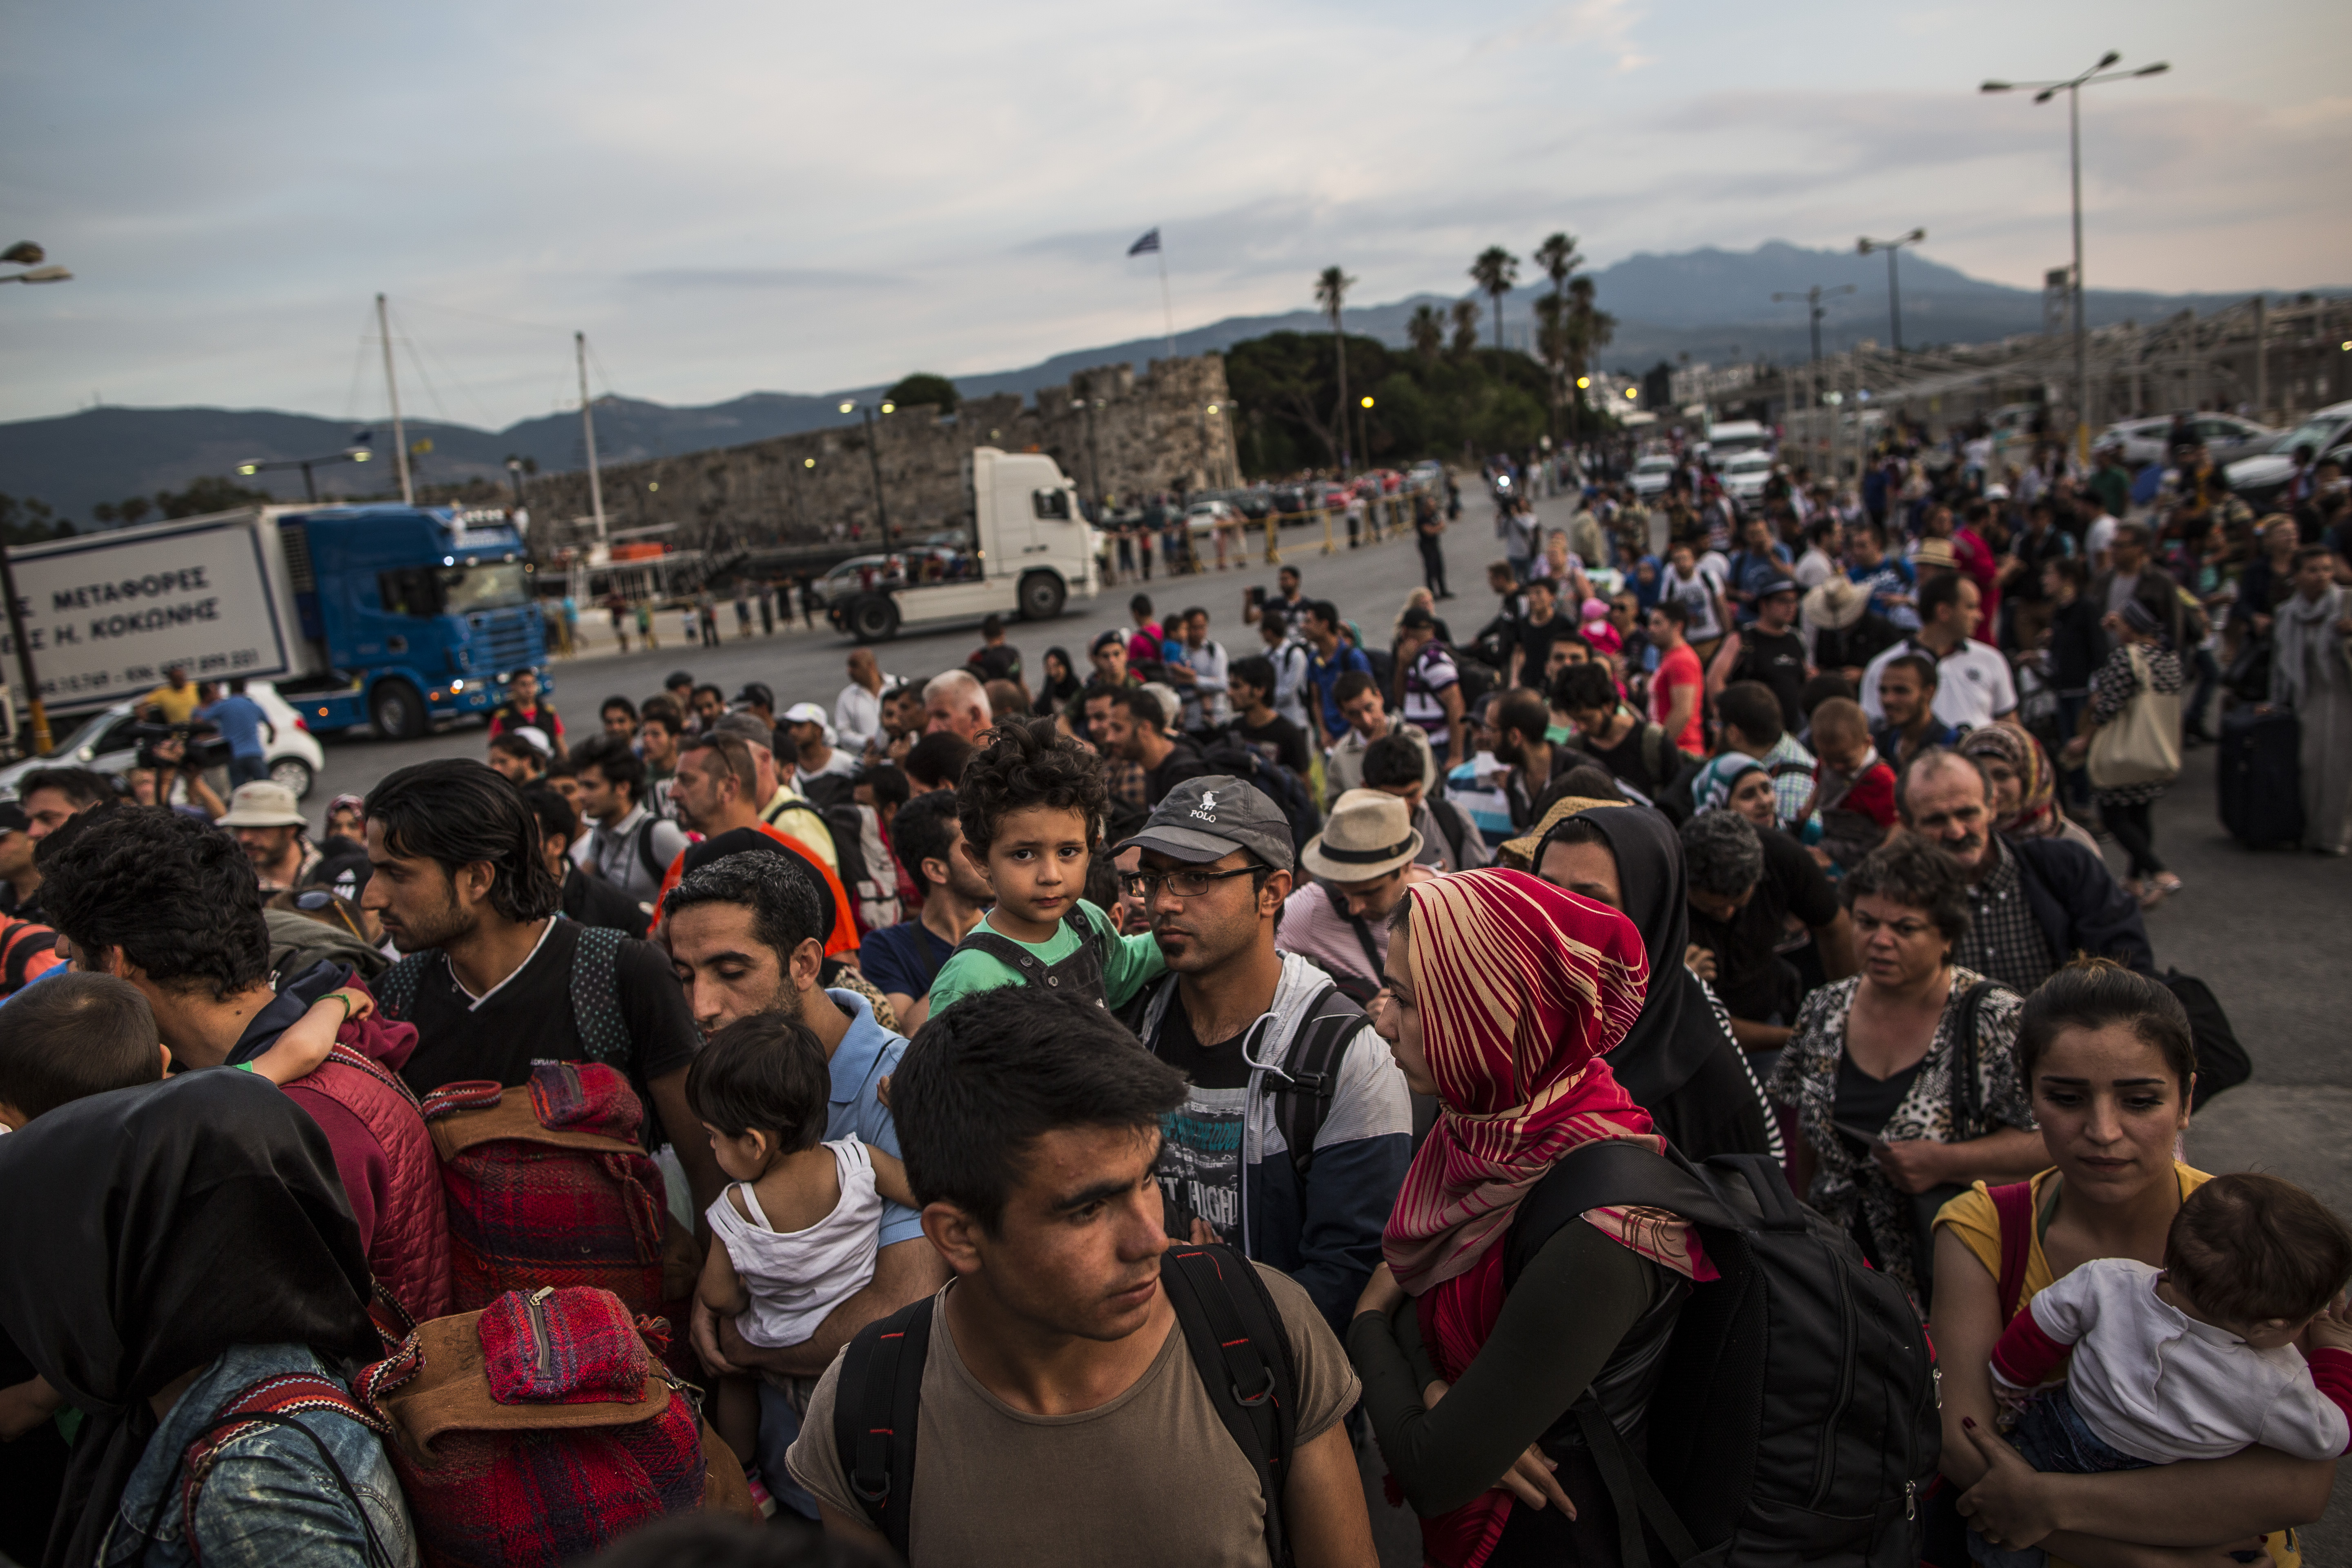 Hundreds of migrant men, women and children along with tourists and locals board a ferry bound for Athens on June 04, 2015 in Kos, Greece.